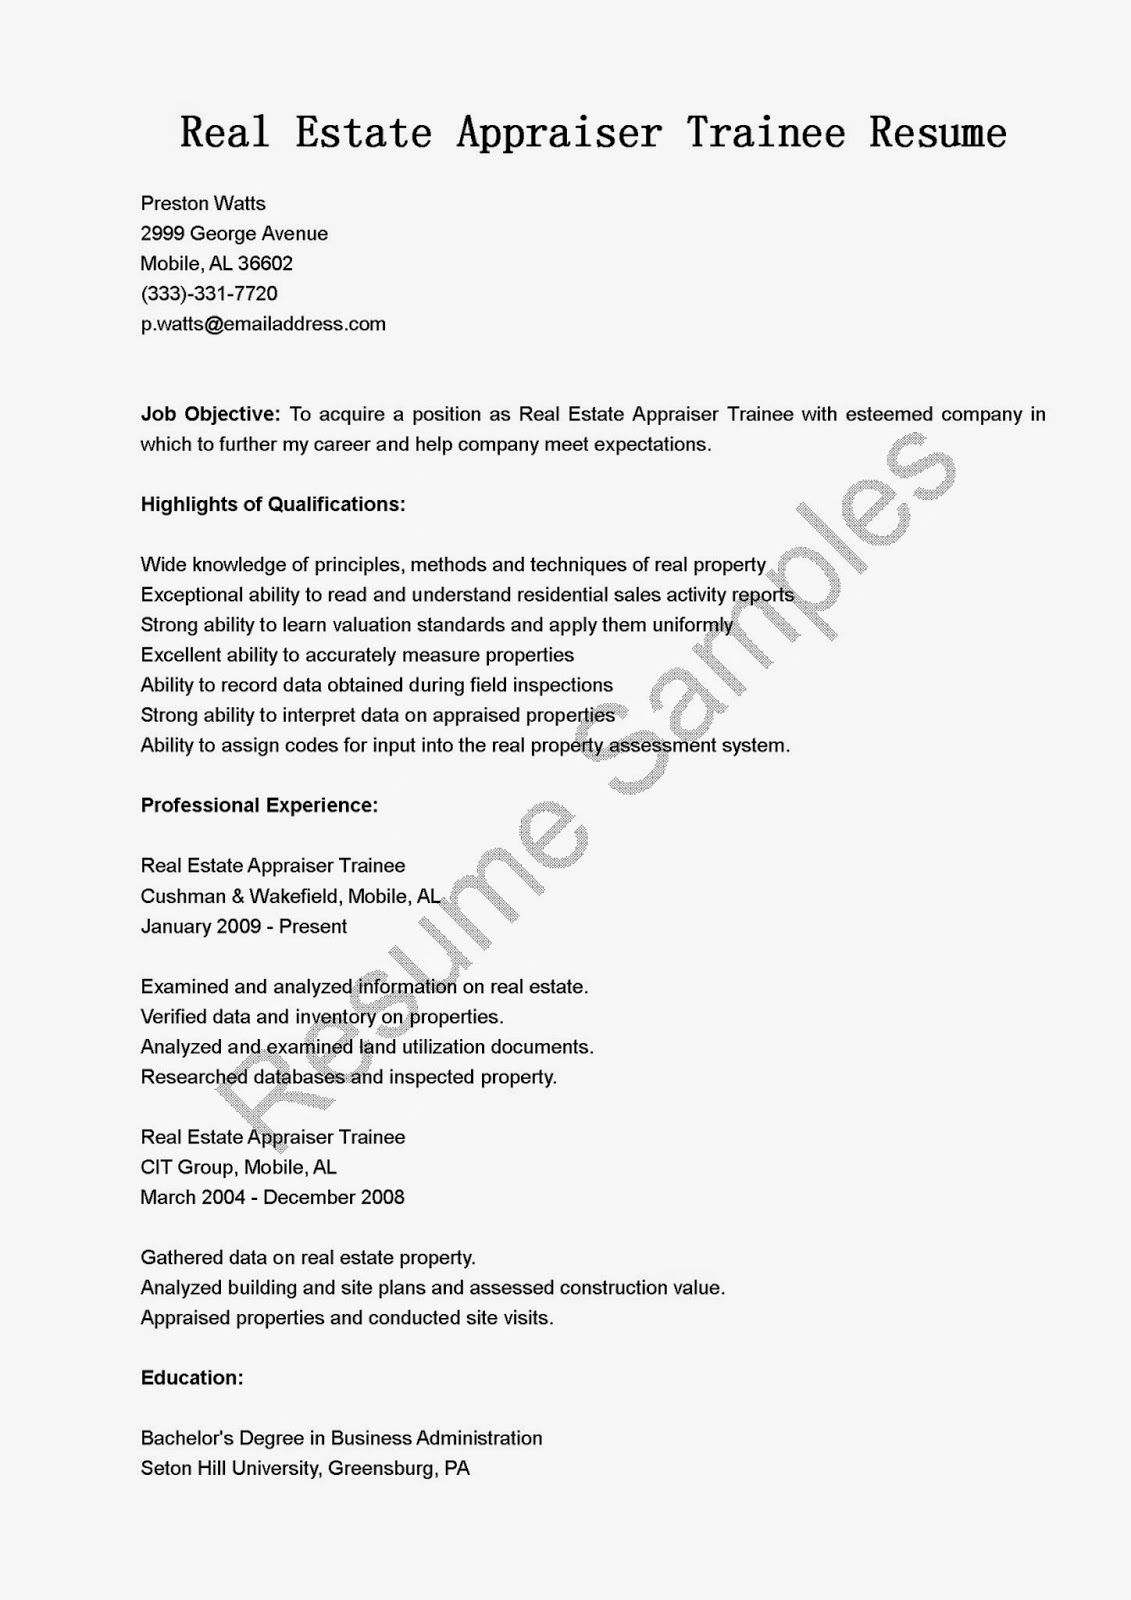 Real Estate Appraiser Trainee Resume Sample |Resume Samples ...